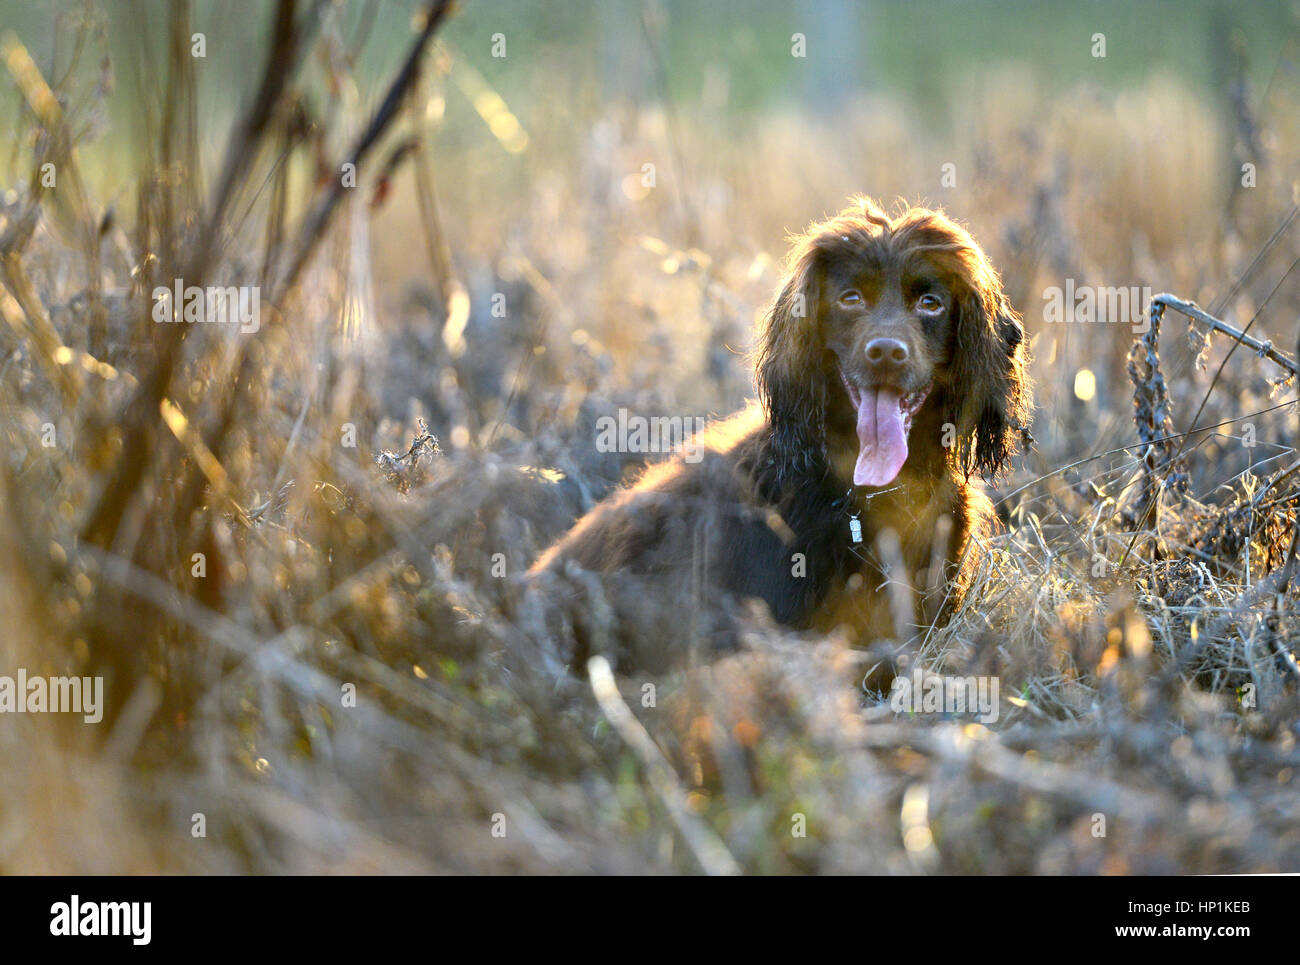 Ripe, East Sussex, UK. 17th February 2017. UK Weather. A cocker spaniel enjoys warm evening sun after a beautiful - Stock Image